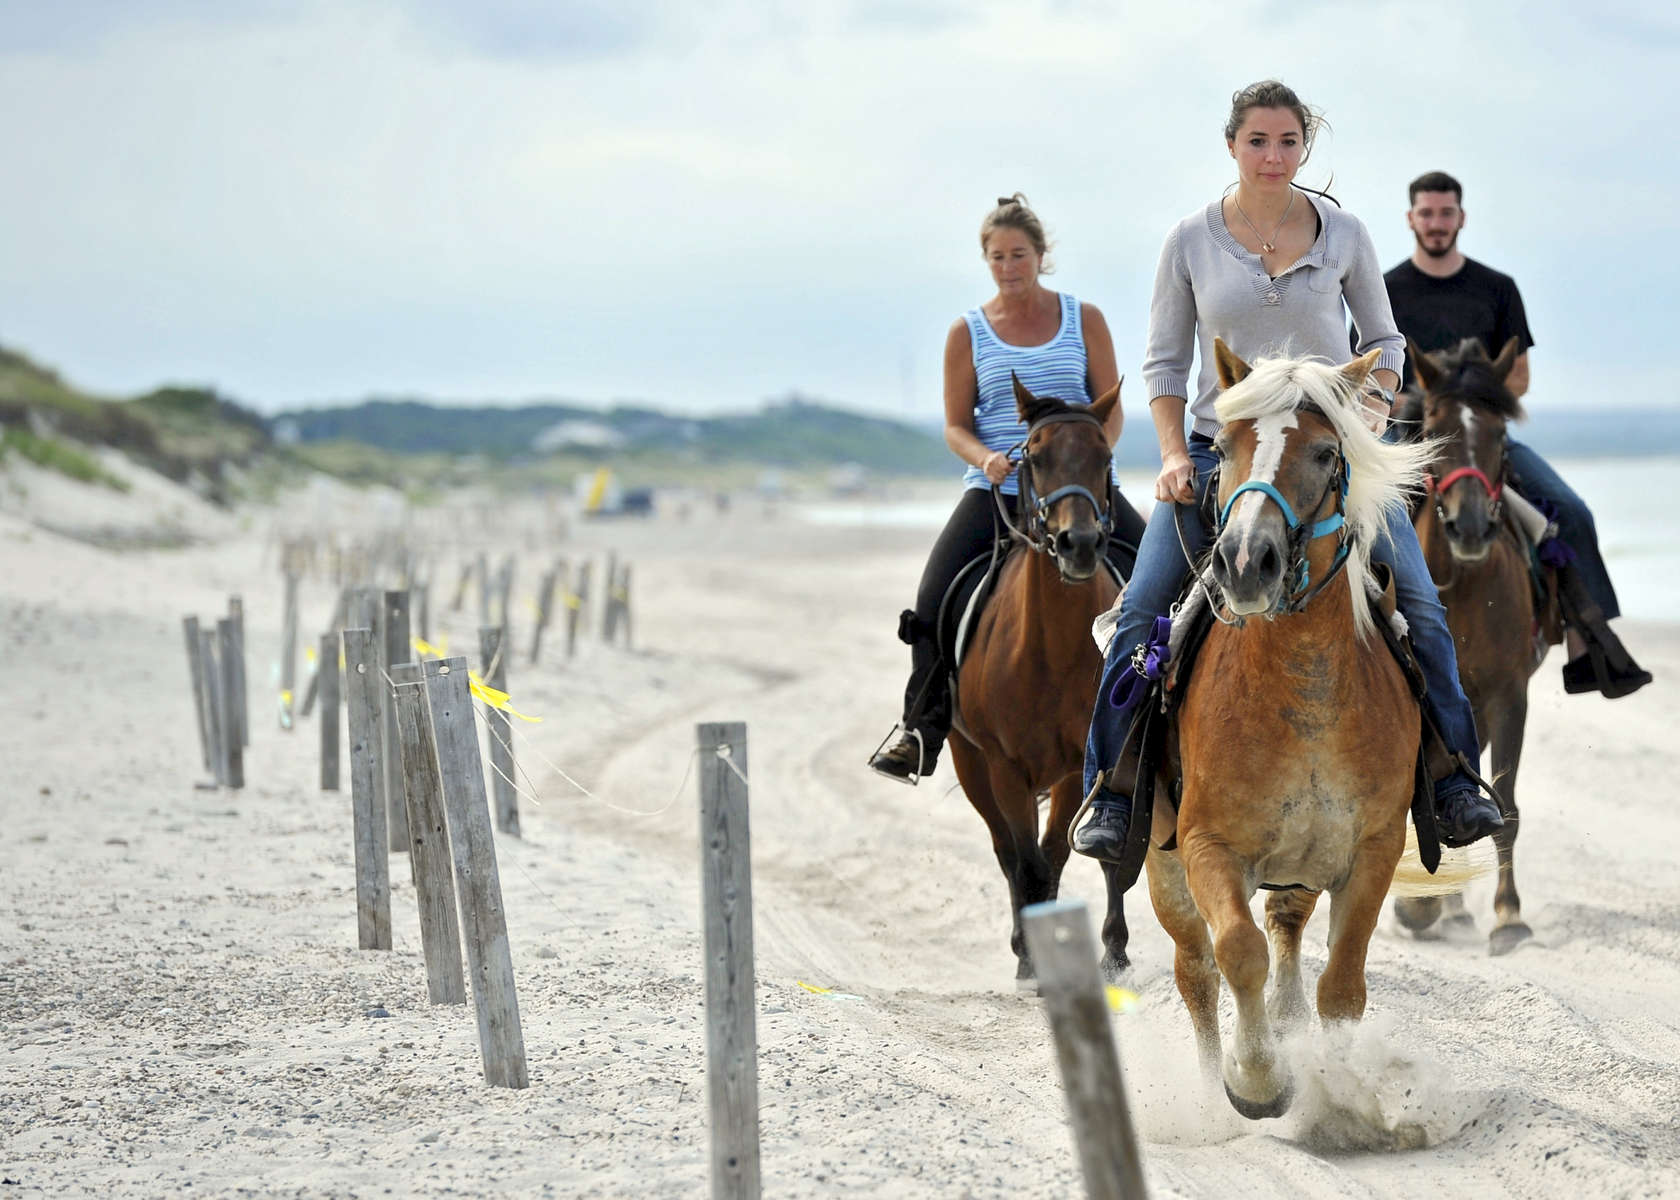 Hayley Pierce of Morris County, N.J., front, horseback rides with her boyfriend Brett Andrea, right, and Linda Roust of Ridge Valley Stables in Grafton and on Sandy Neck Beach.